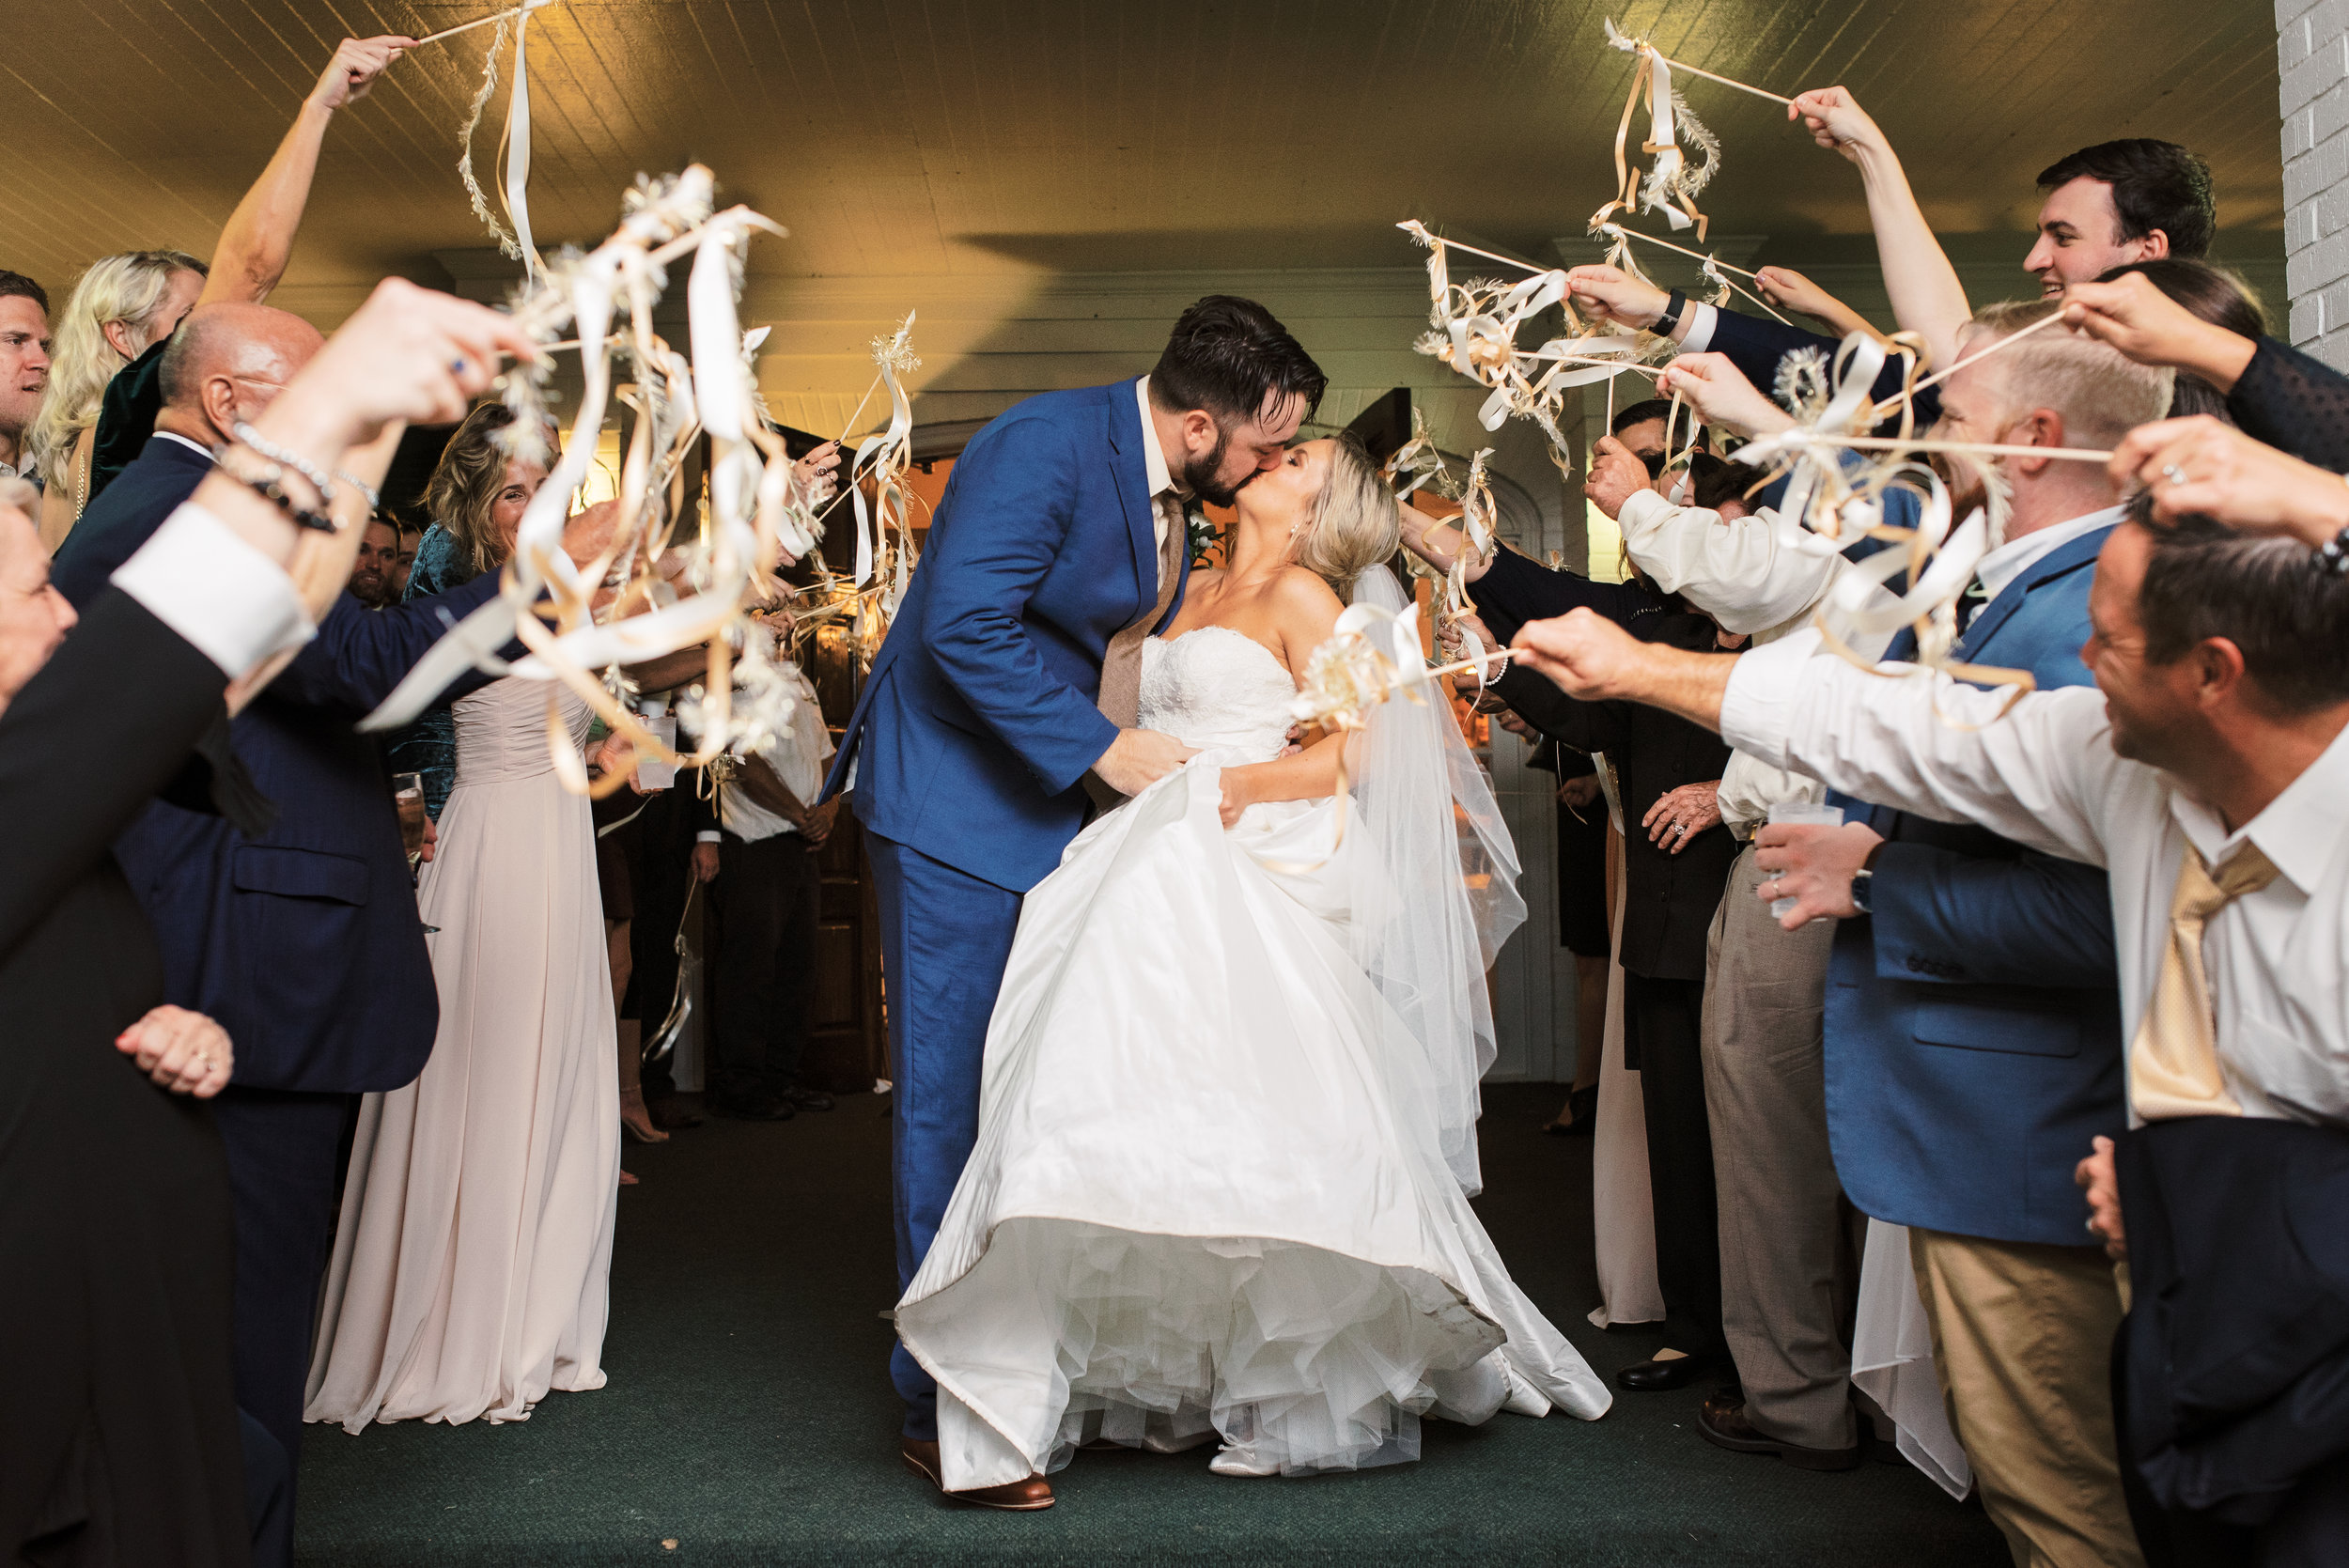 Southern Fete, Southern Wedding, Bride and Groom, Ribbon Exit, Special Moment, Sarah Beth Photography